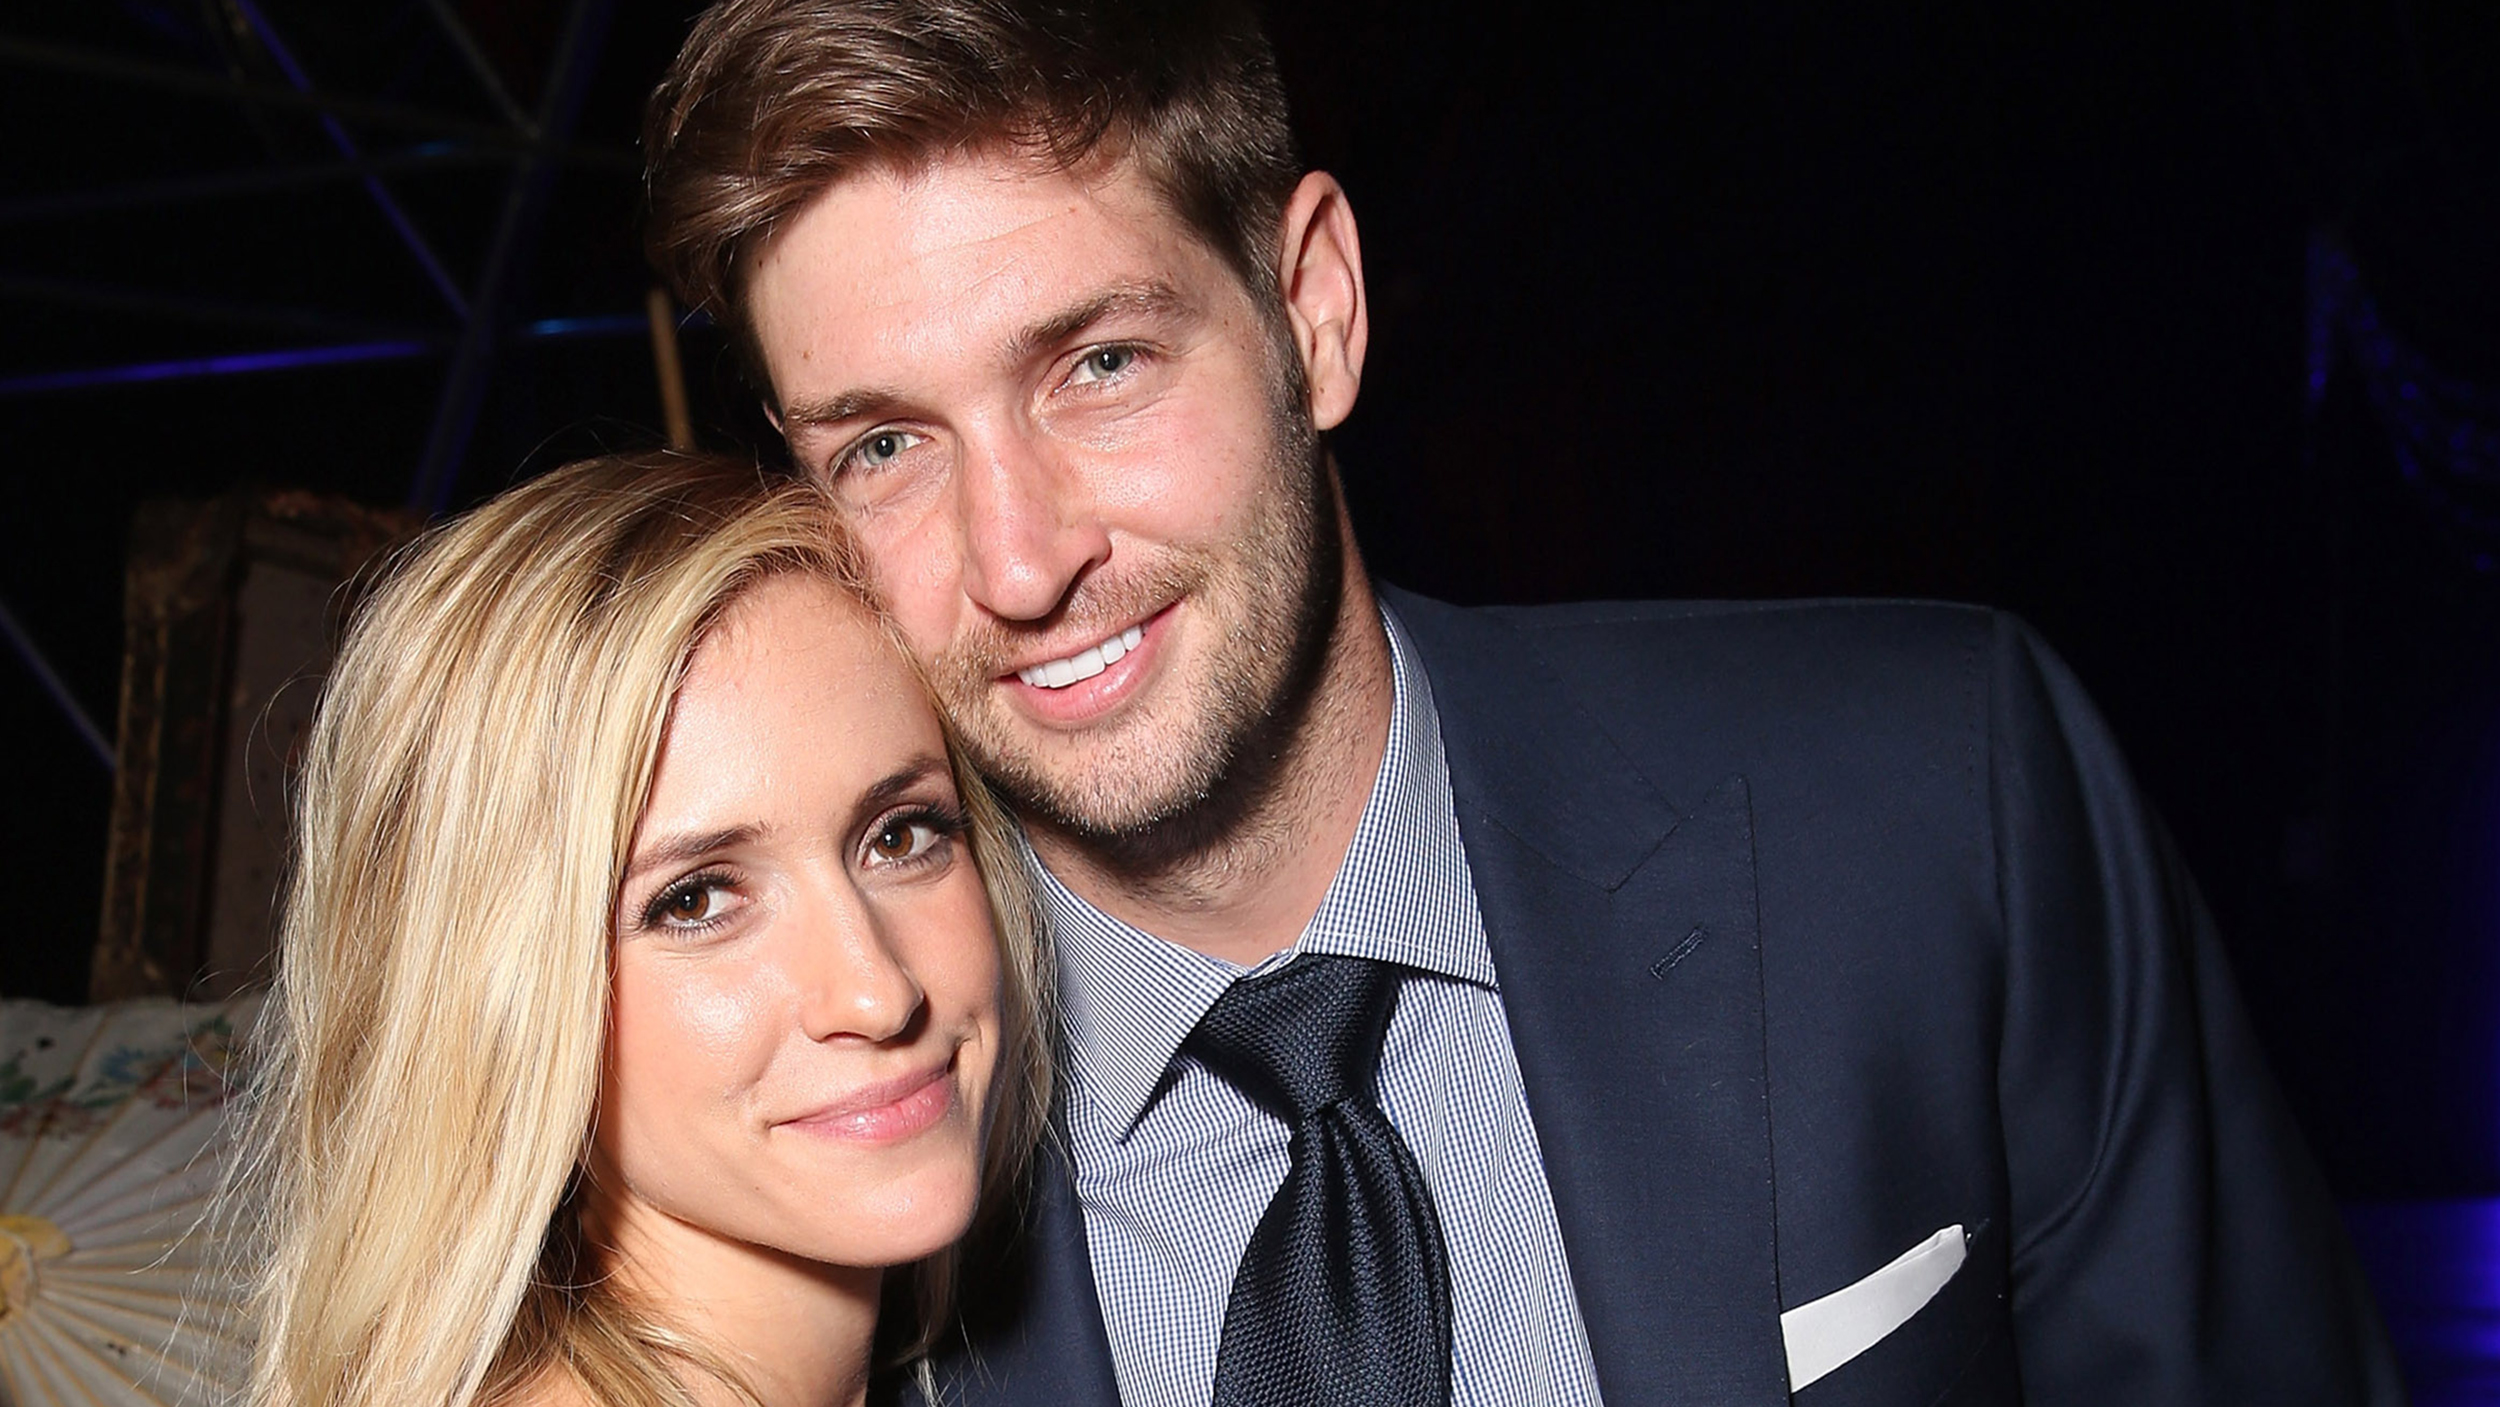 Kristin Cavallari opens up about marriage: 'Our relationship isn't perfect'